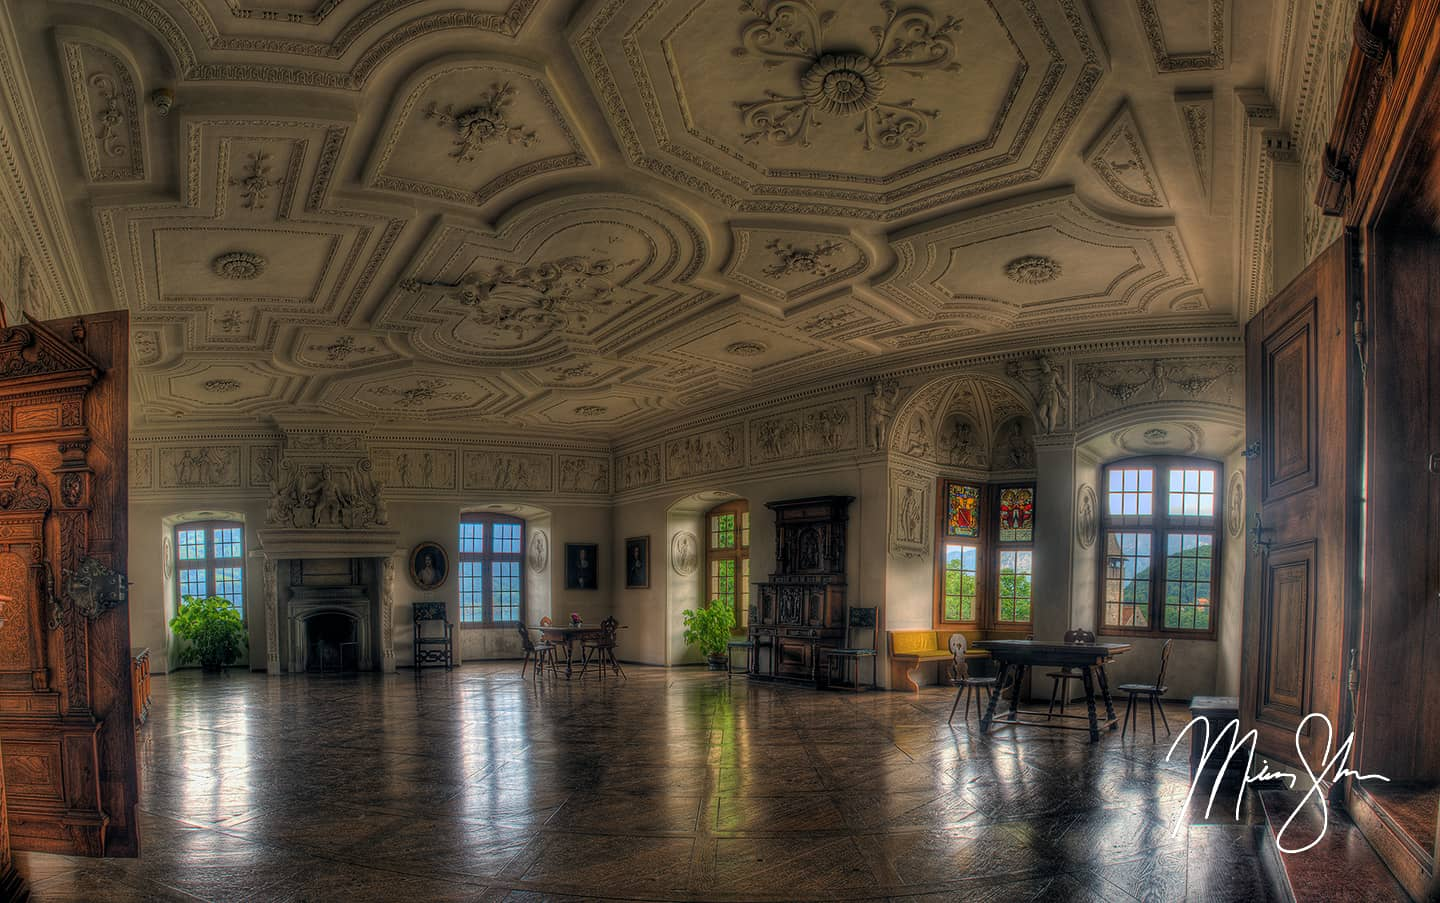 The Marble Room (Elegance) - Spiez, Canton of Bern, Switzerland